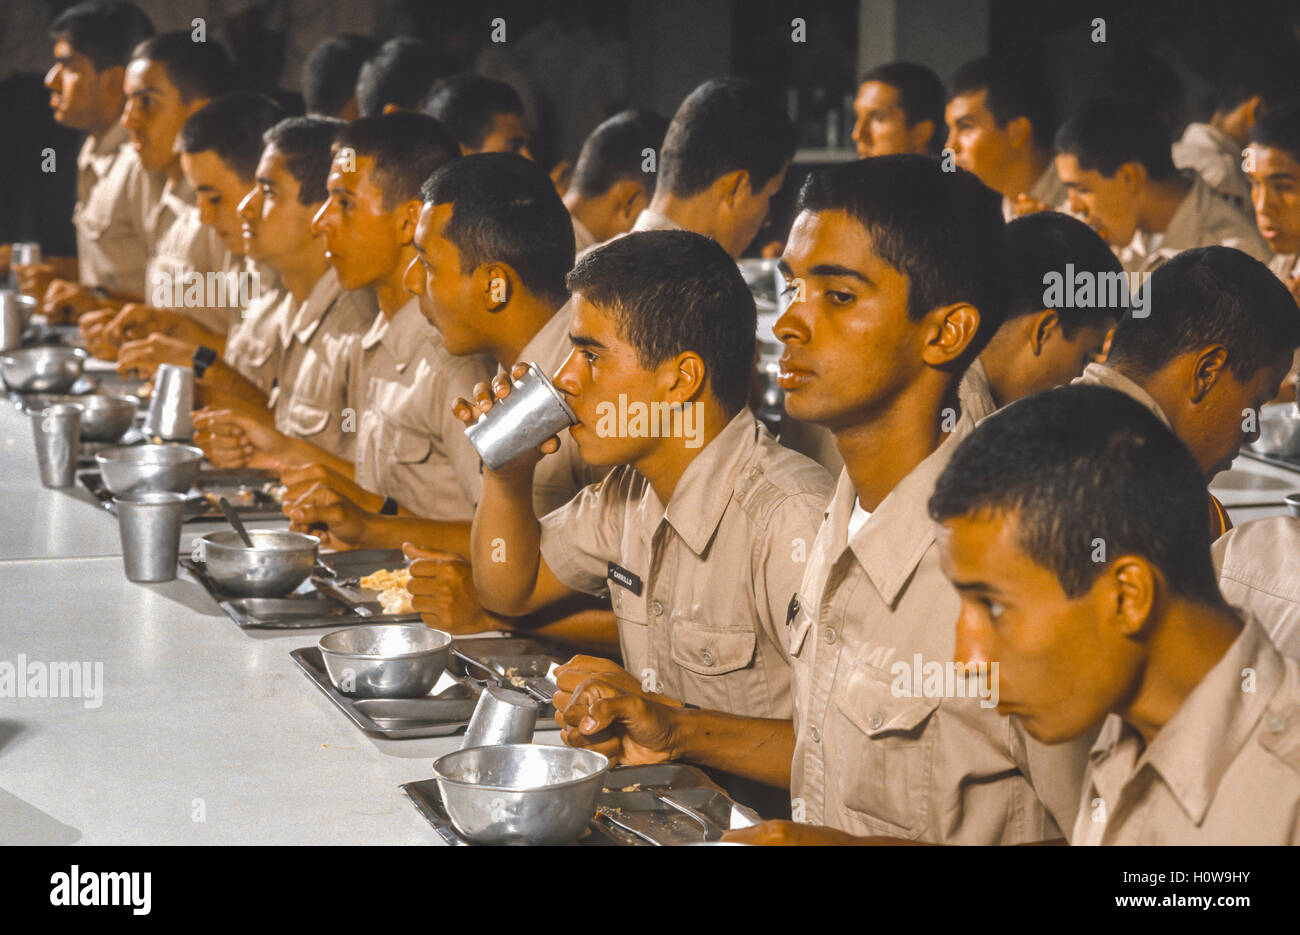 CORDERO, TACHIRA STATE, VENEZUELA - Cadets eating lunch in mess hall at National Guard Academy in May 1988. - Stock Image